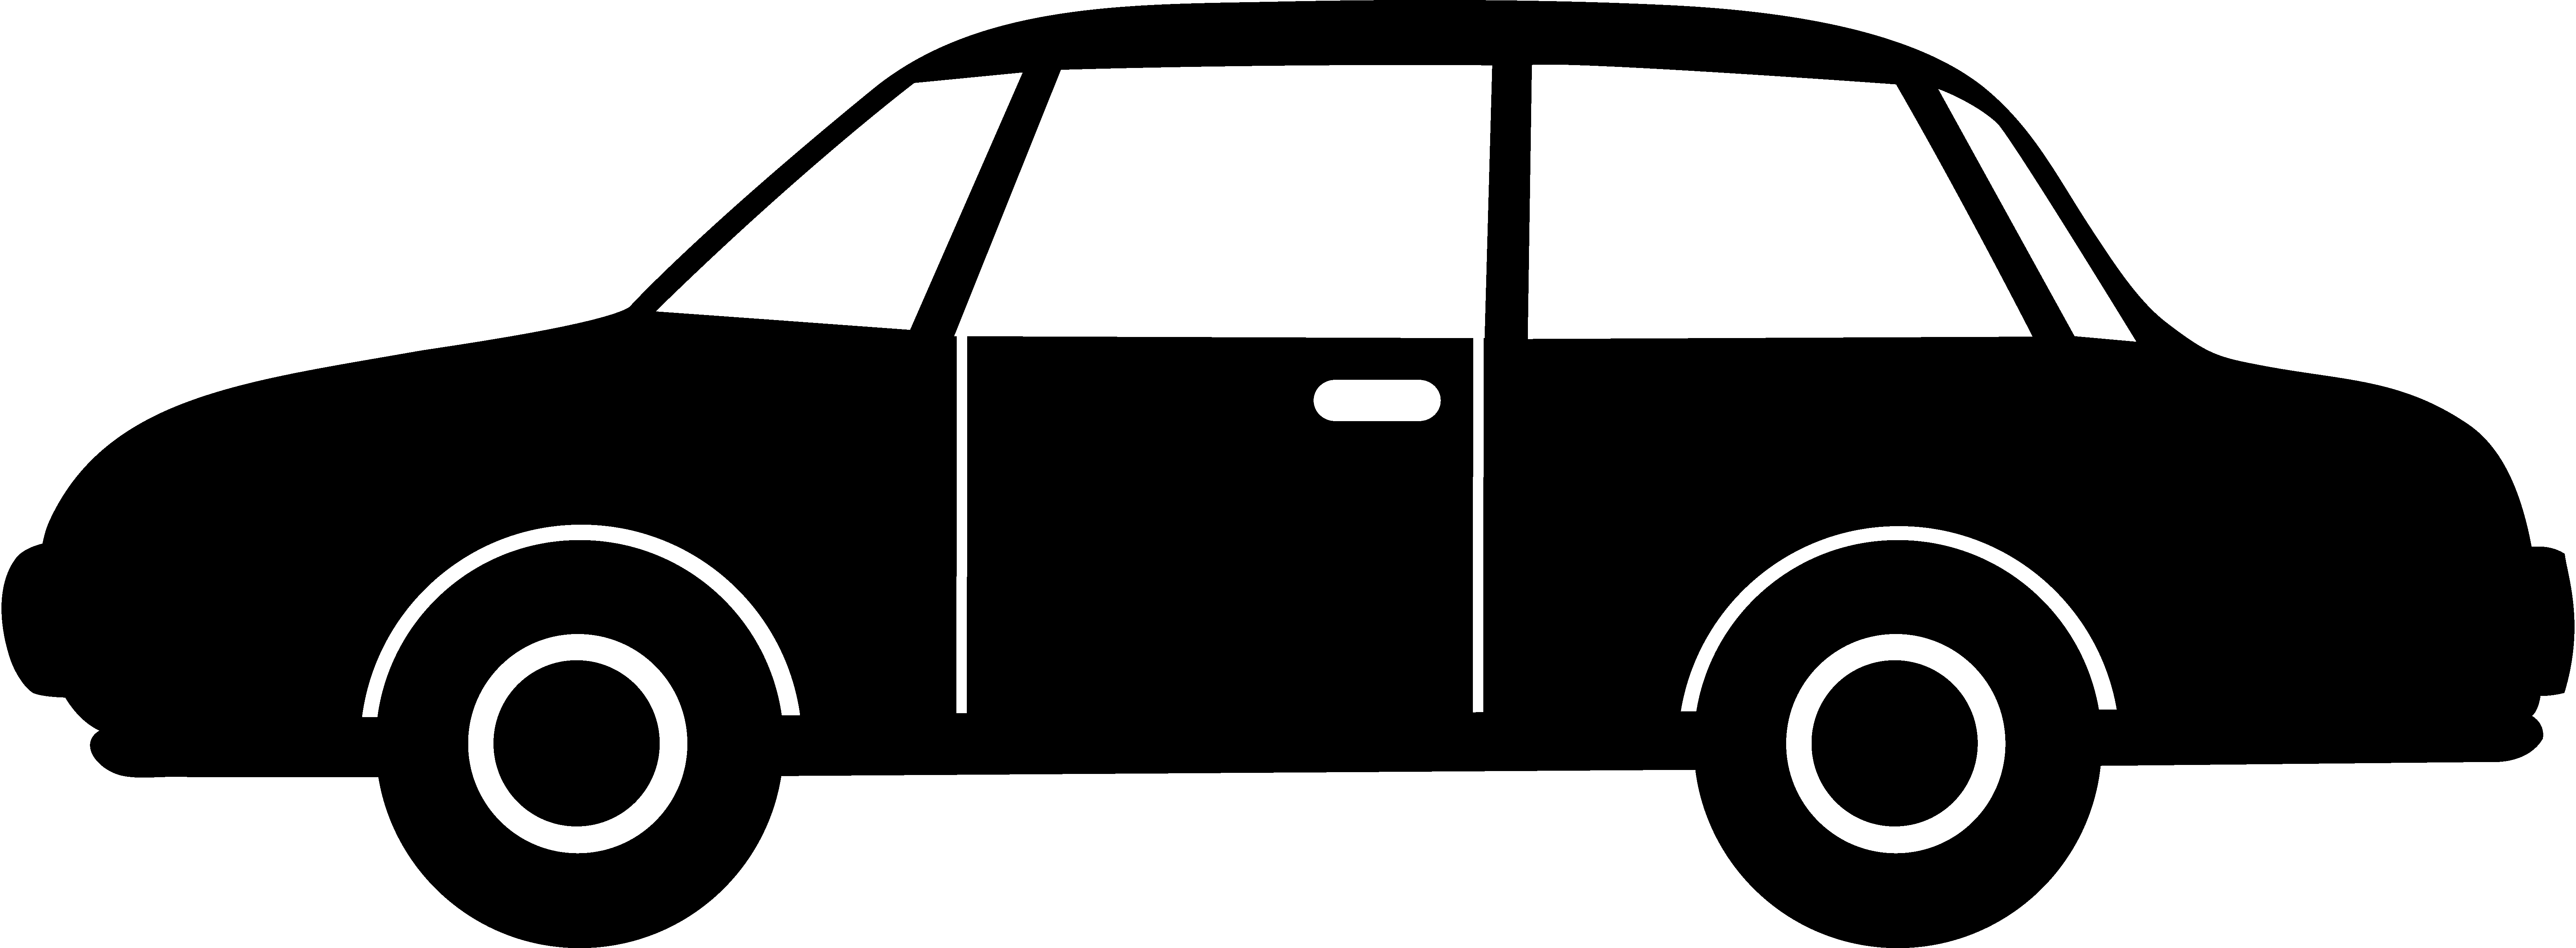 Clipart png car. Silhouette transparent pictures free